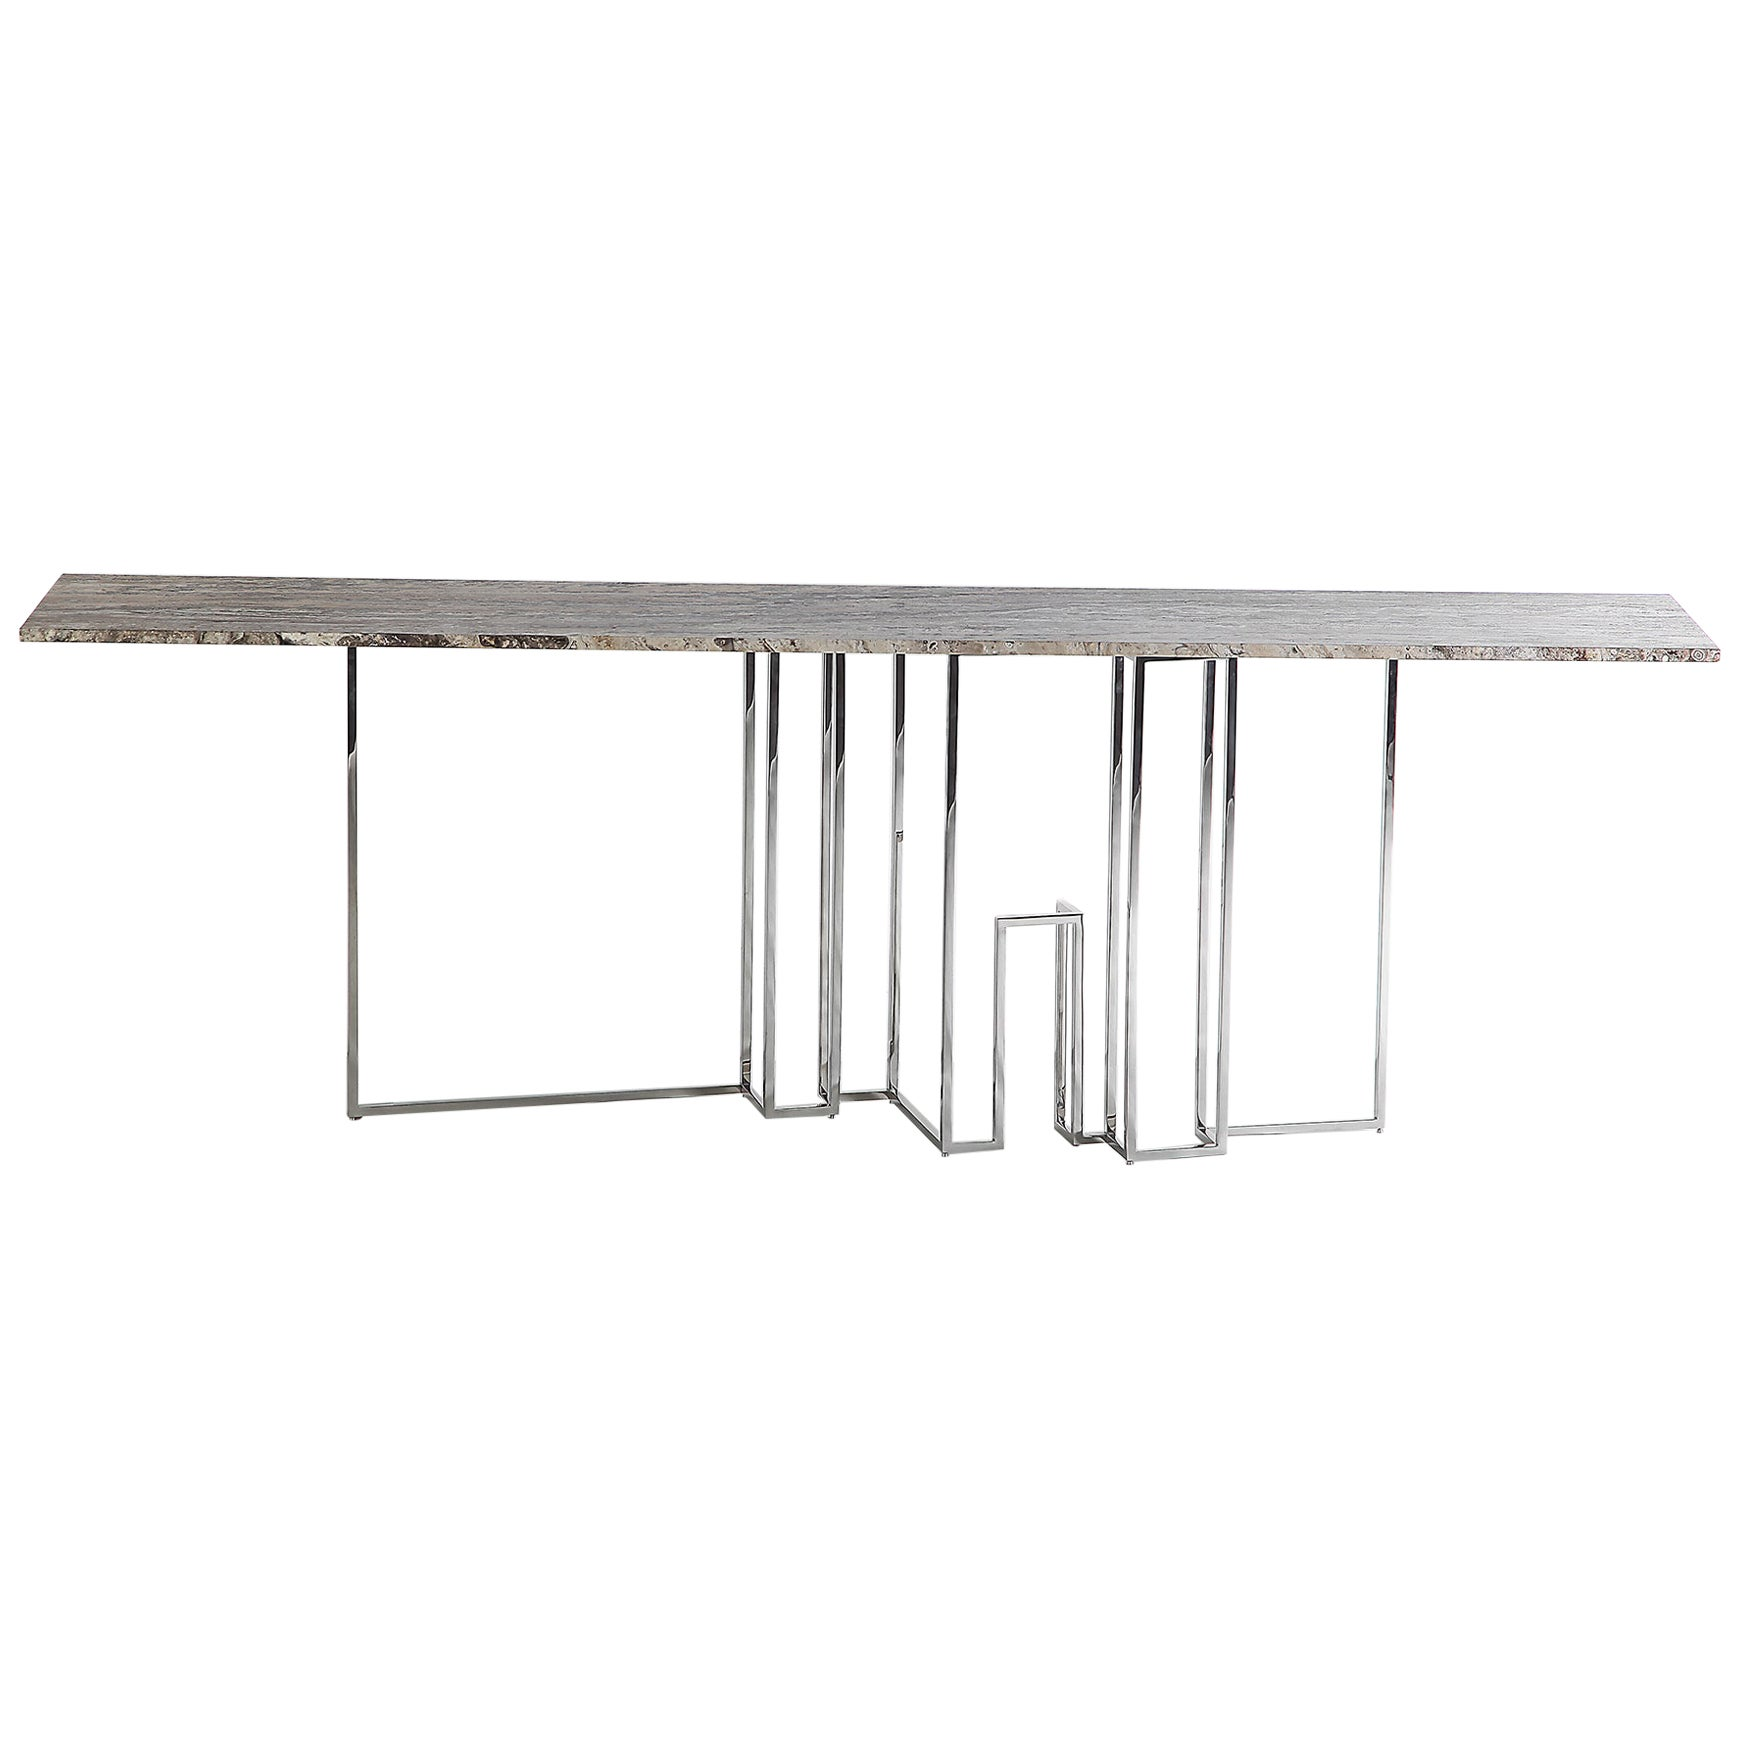 Skyline, Console in Travertine Marble and Hand Polished Stainless Steel